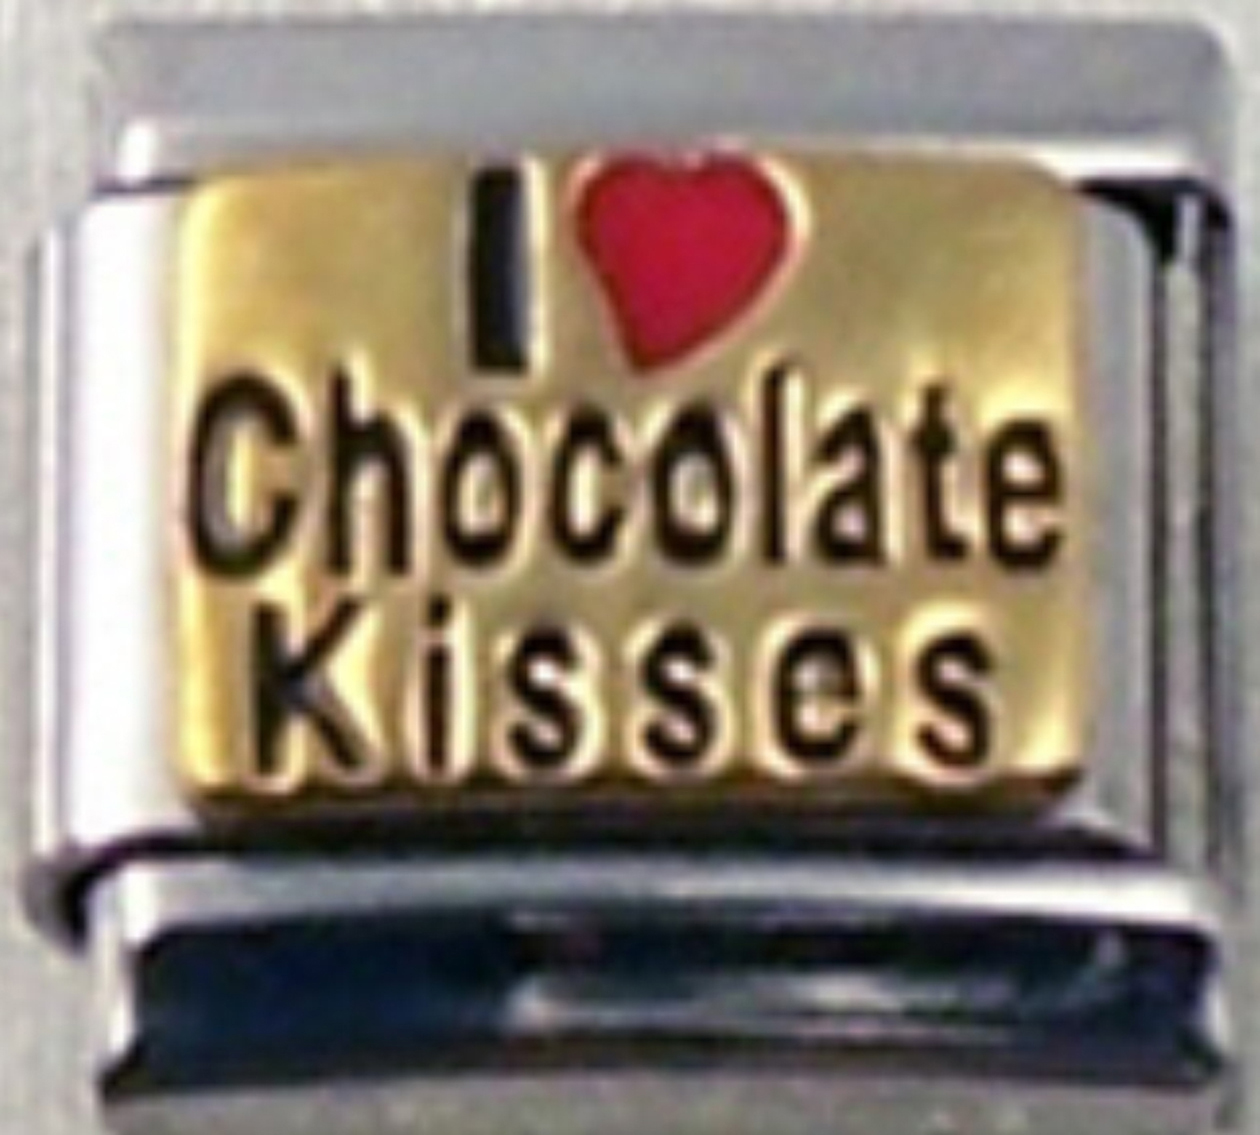 LV023-Chocolate-Kisses